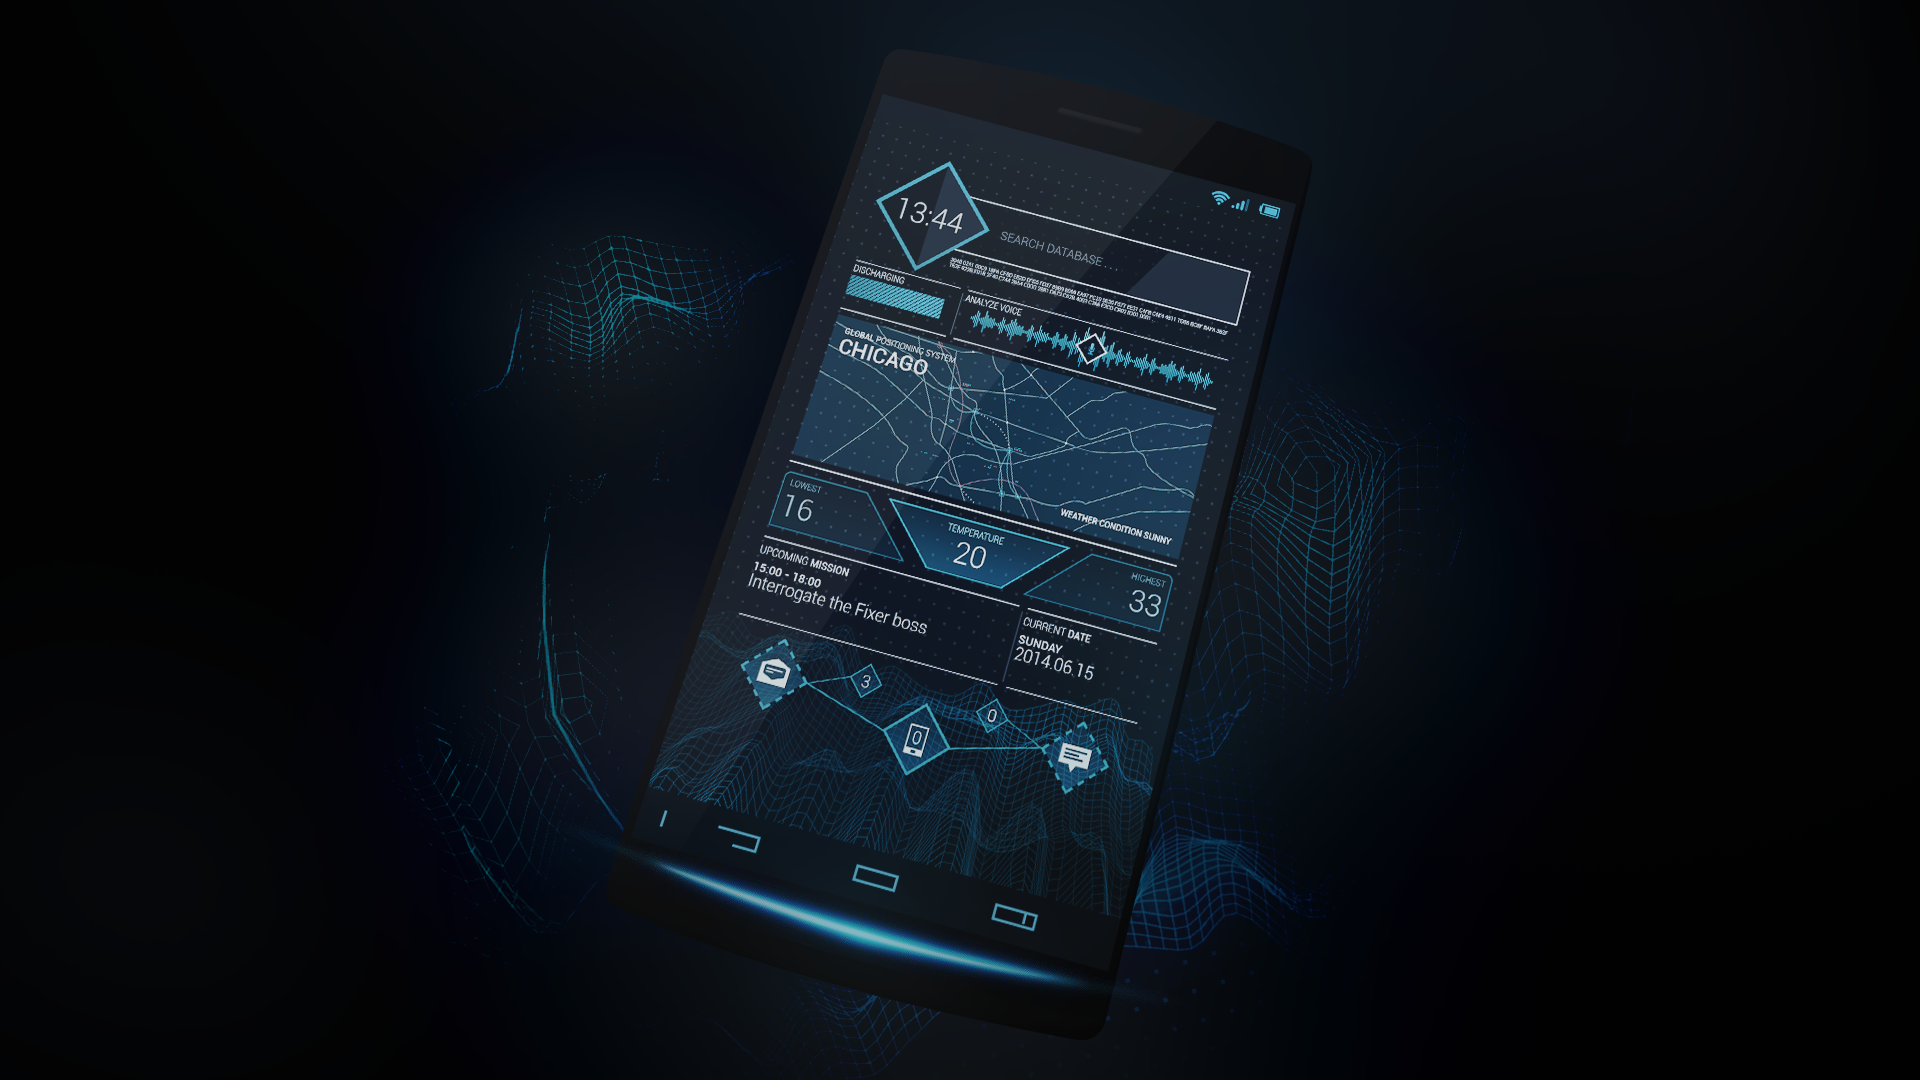 WATCH_DOGS Future ctOS - Theme (Android)